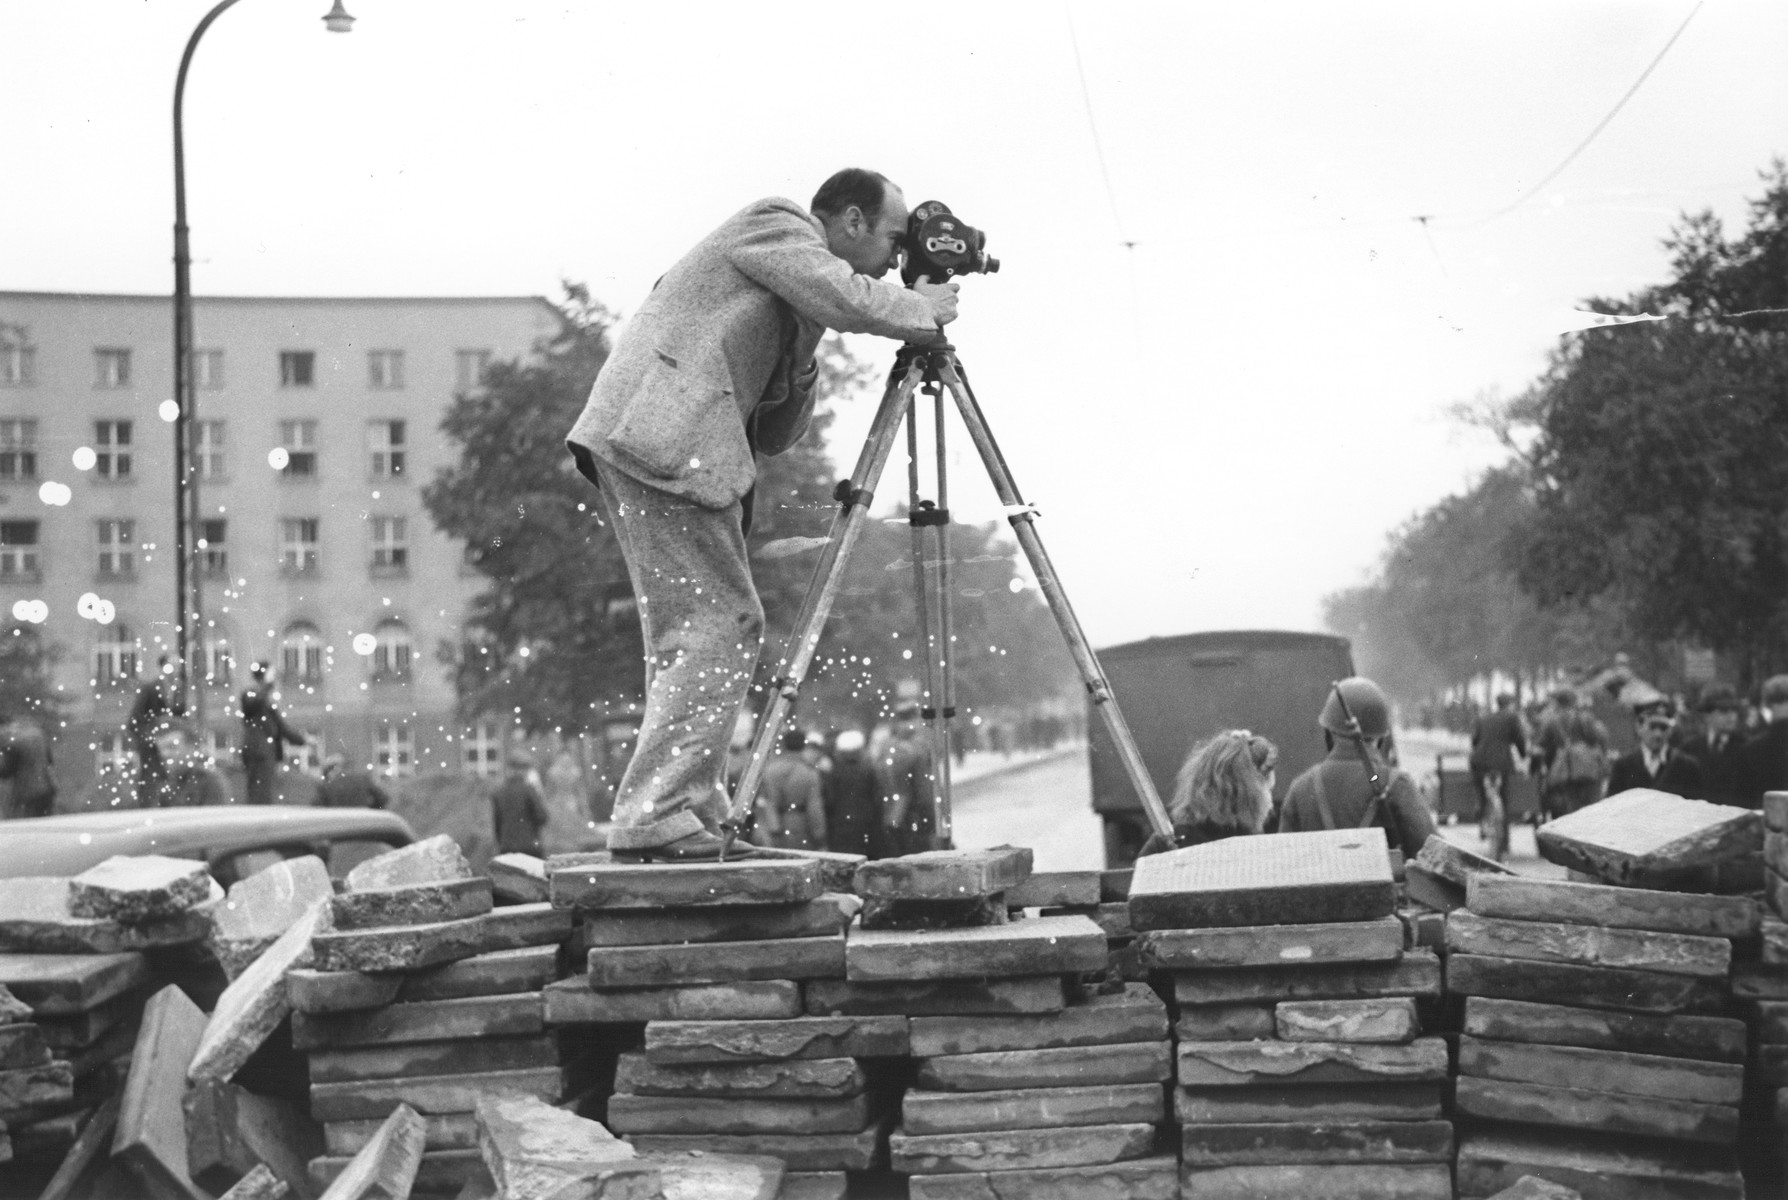 American photographer Julien Bryan films a scene duing the siege of Warsaw.  He stands atop a barricade of paving stones that had been erected to slow the advance of the German army.